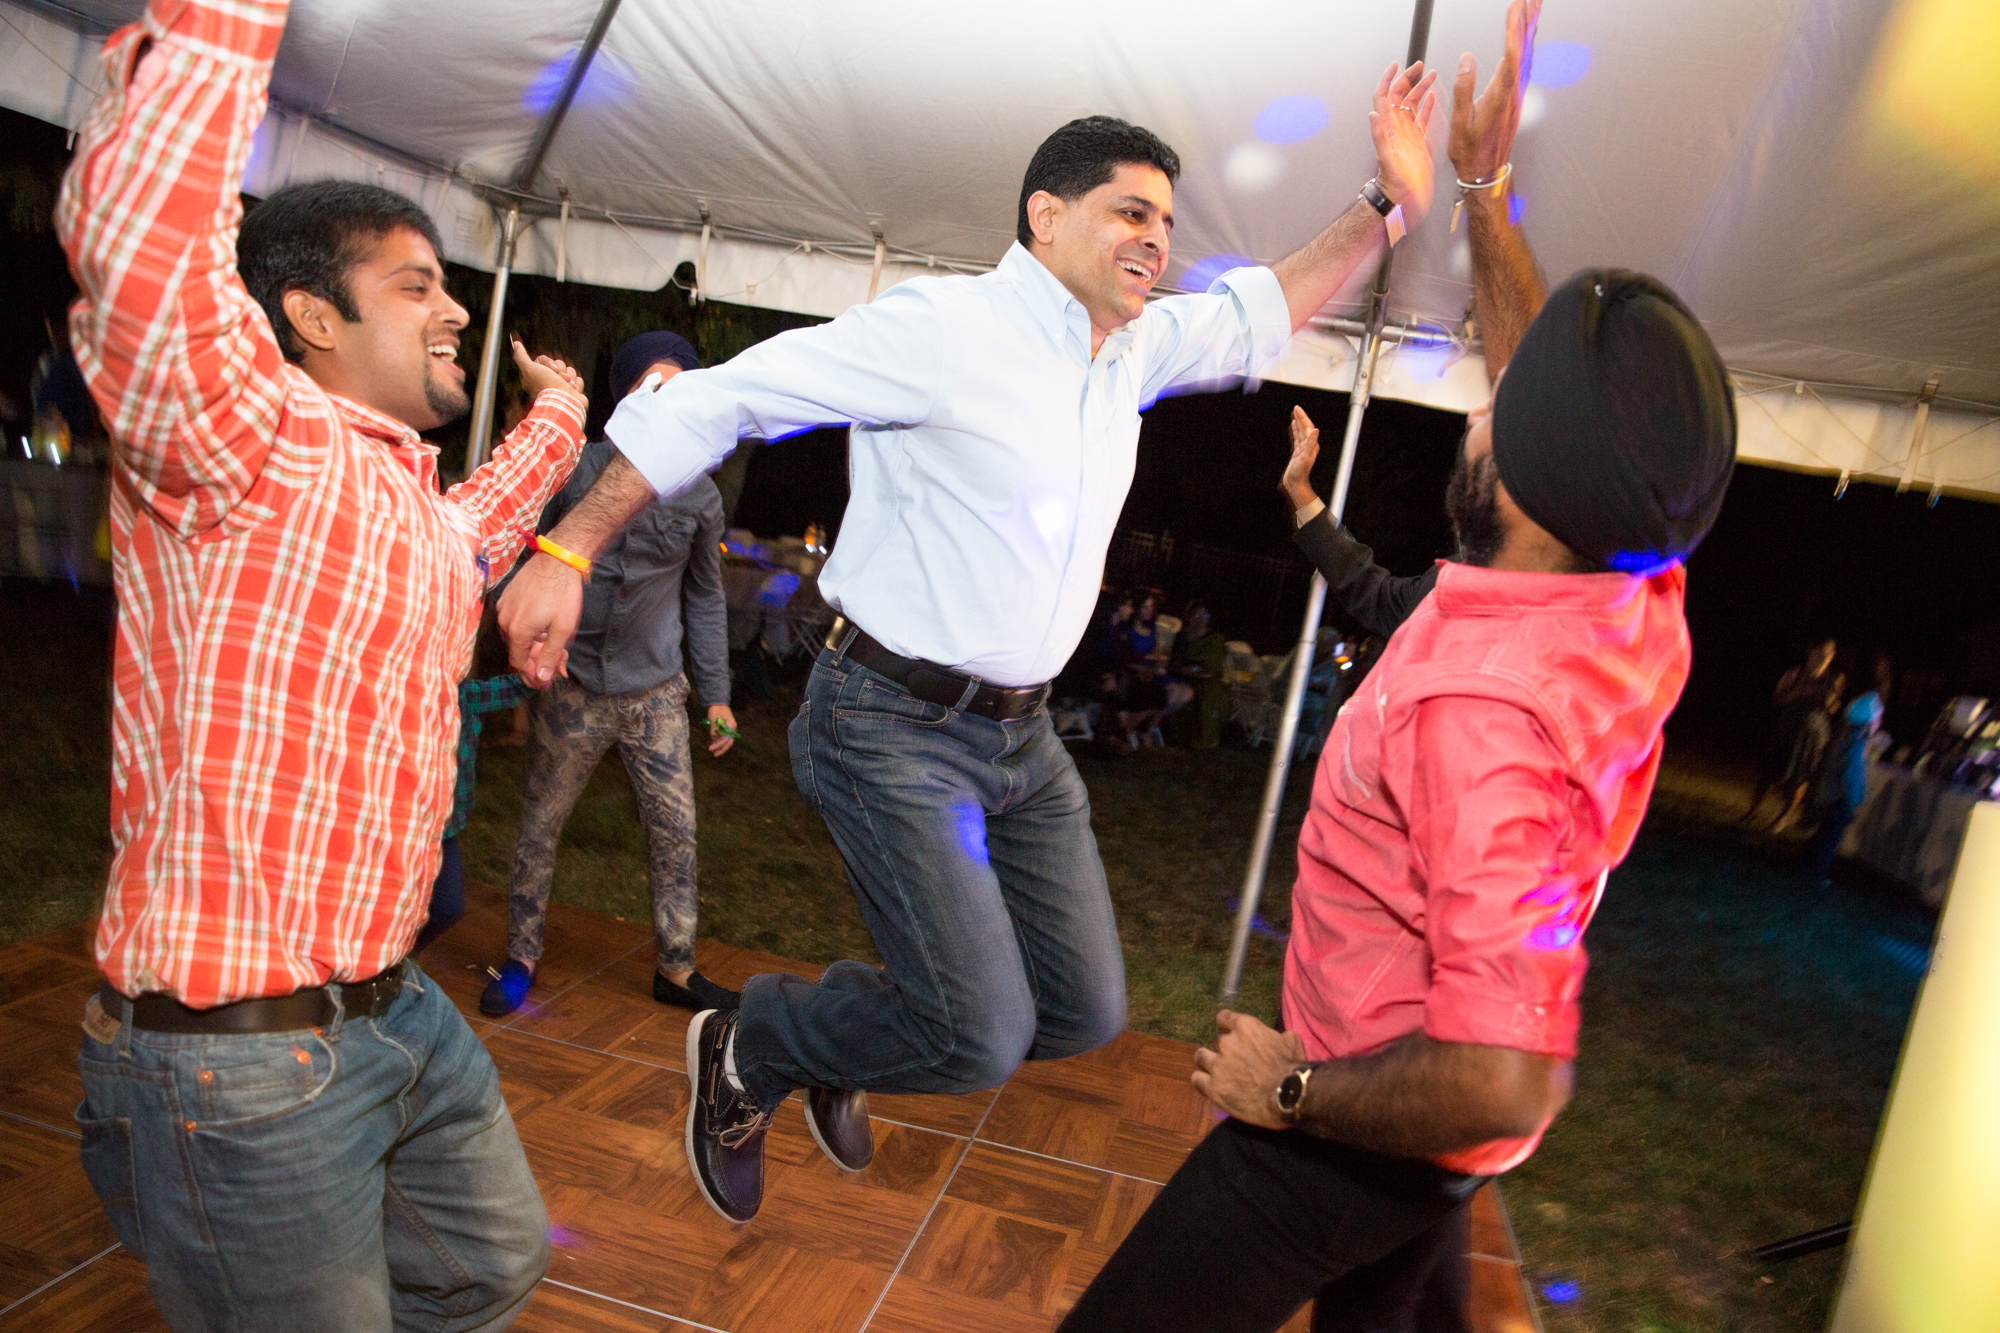 37-William Hendra Photography Singh Graduation Party.jpg